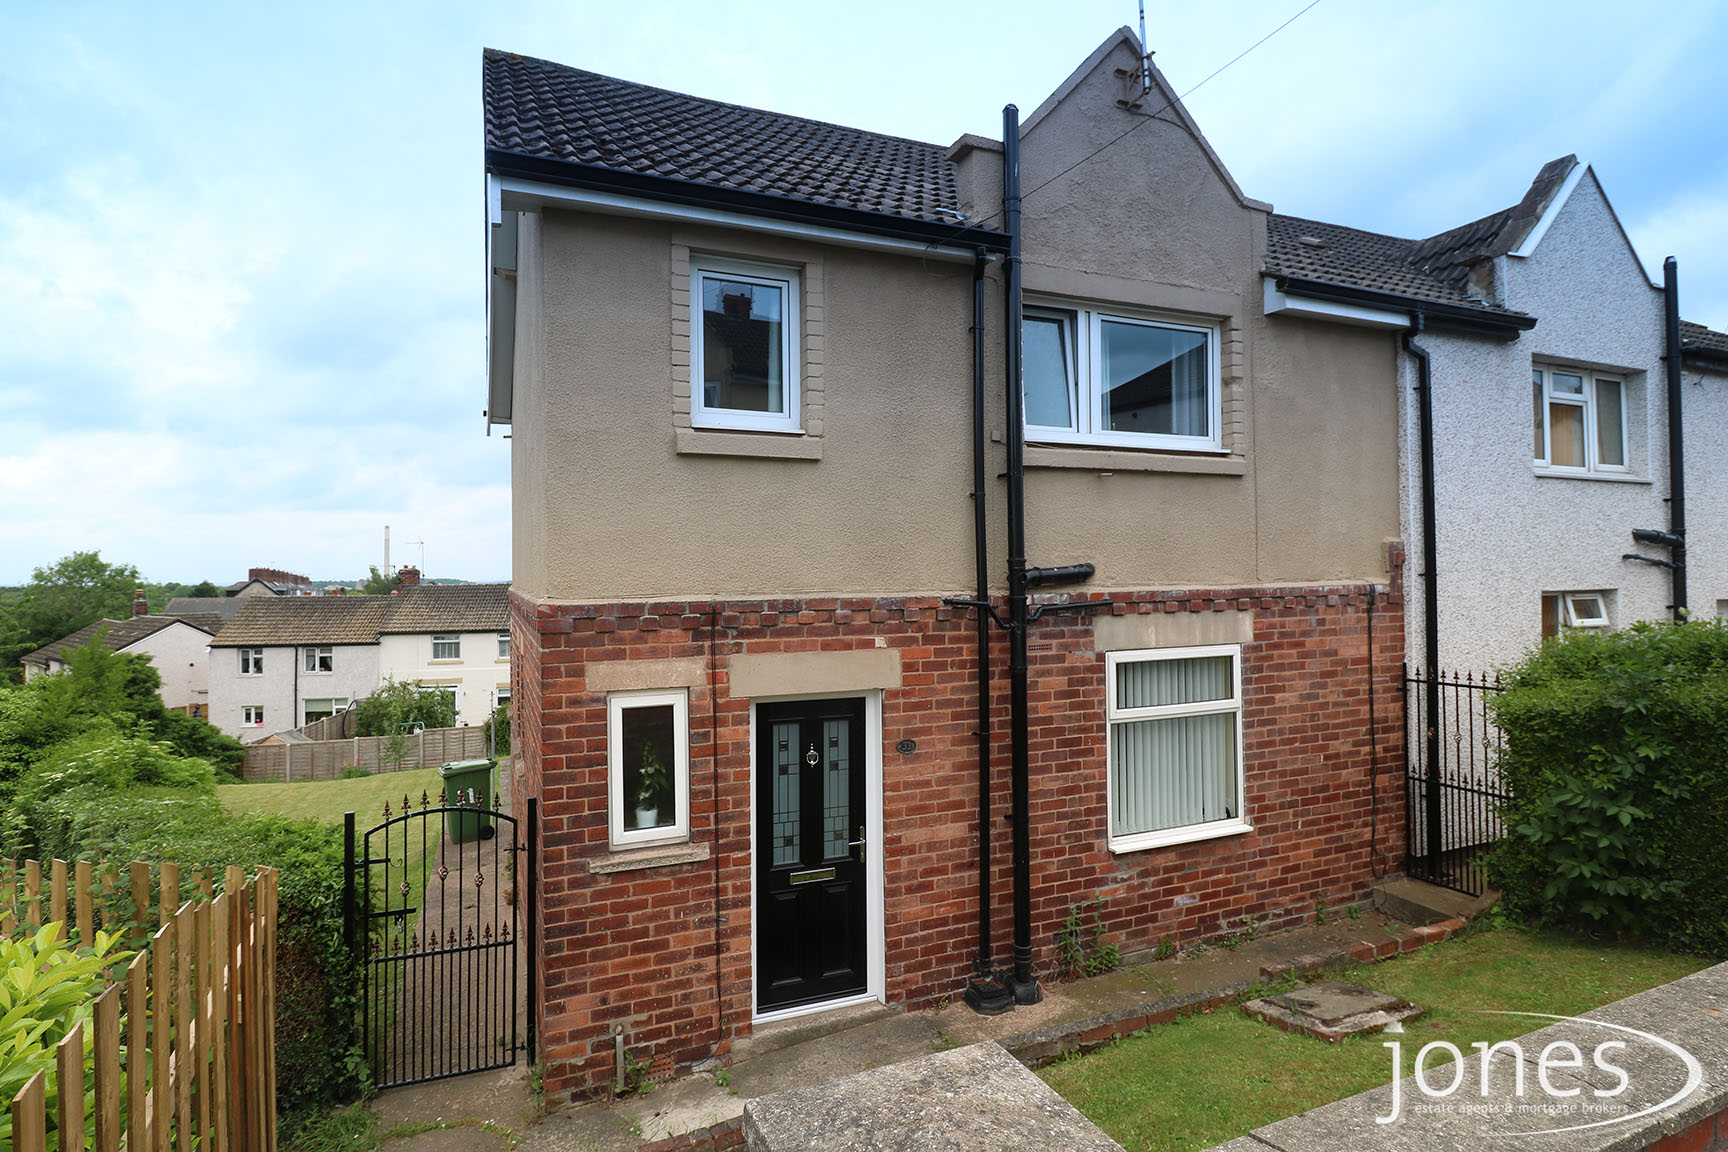 Home for Sale Let - Photo 01 Mill Crescent, Whitwell, Worksop, S80 4SF